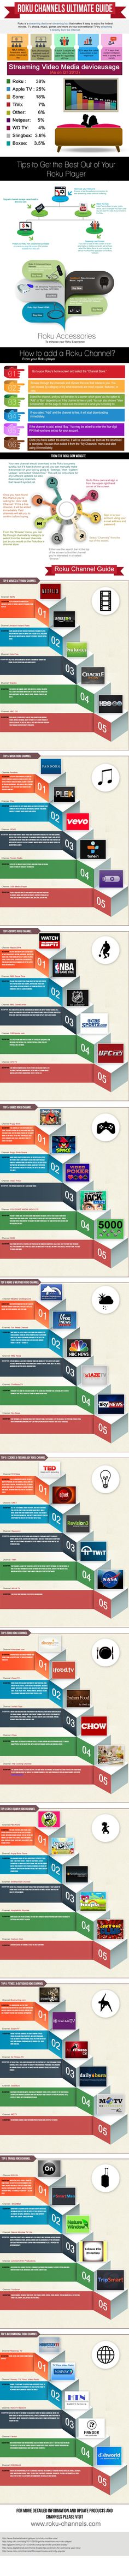 Roku Channels Ultimate Guide [I LOVE my @Roku - this is an excellent guide to help you enjoy yours! ~ Sherry]